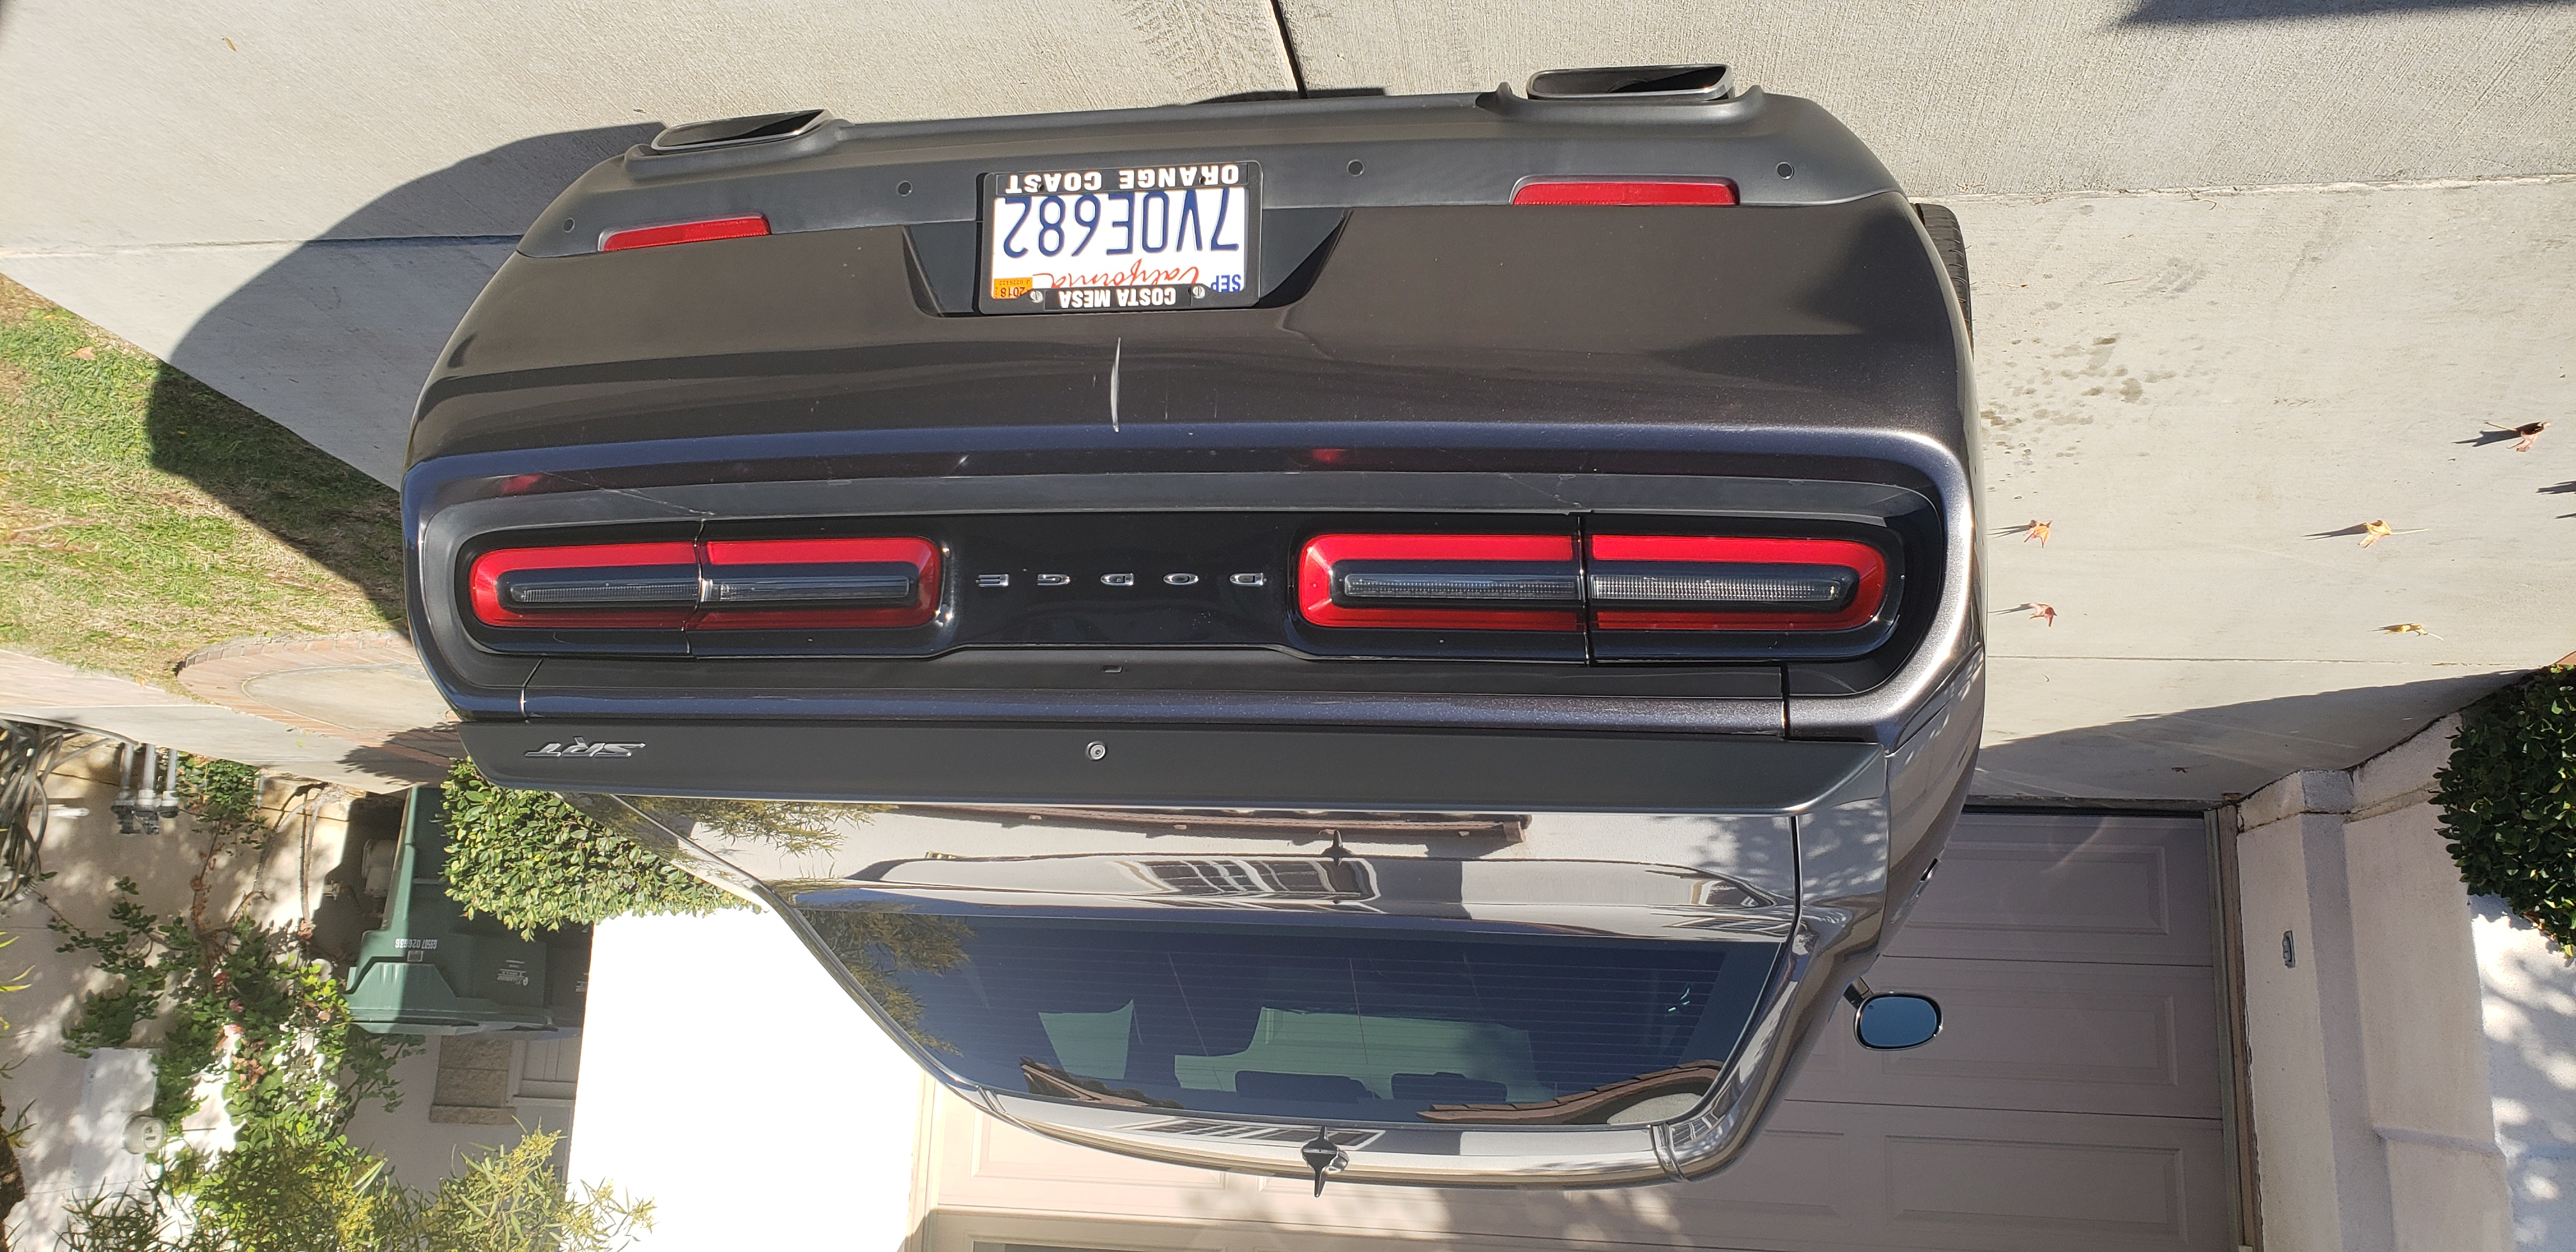 Used 2015 Dodge Challenger For Sale in Huntington Beach, CA